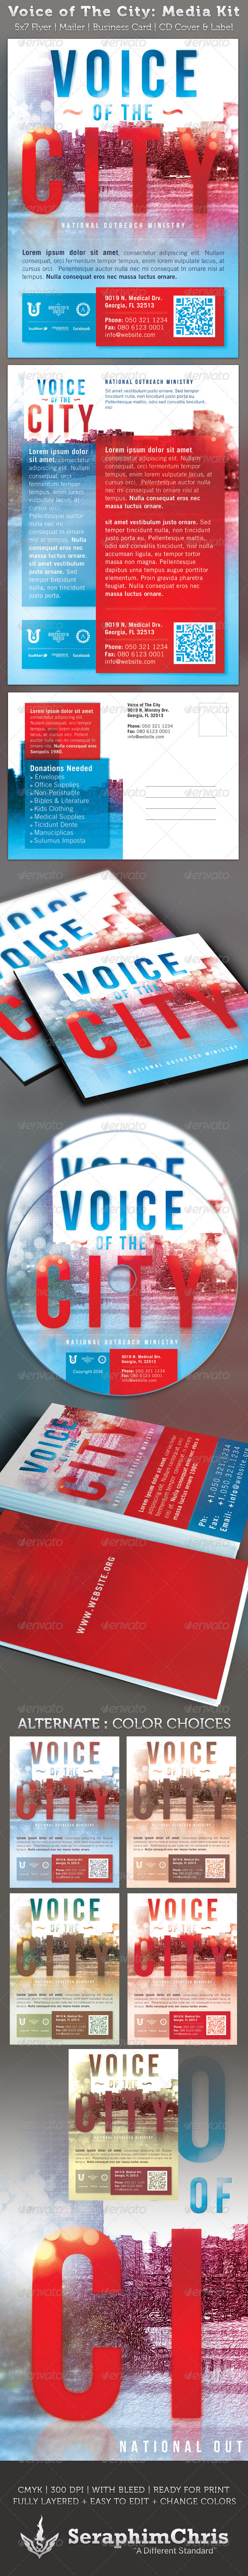 Voice of The City Church Charity Media Kit - Church Flyers